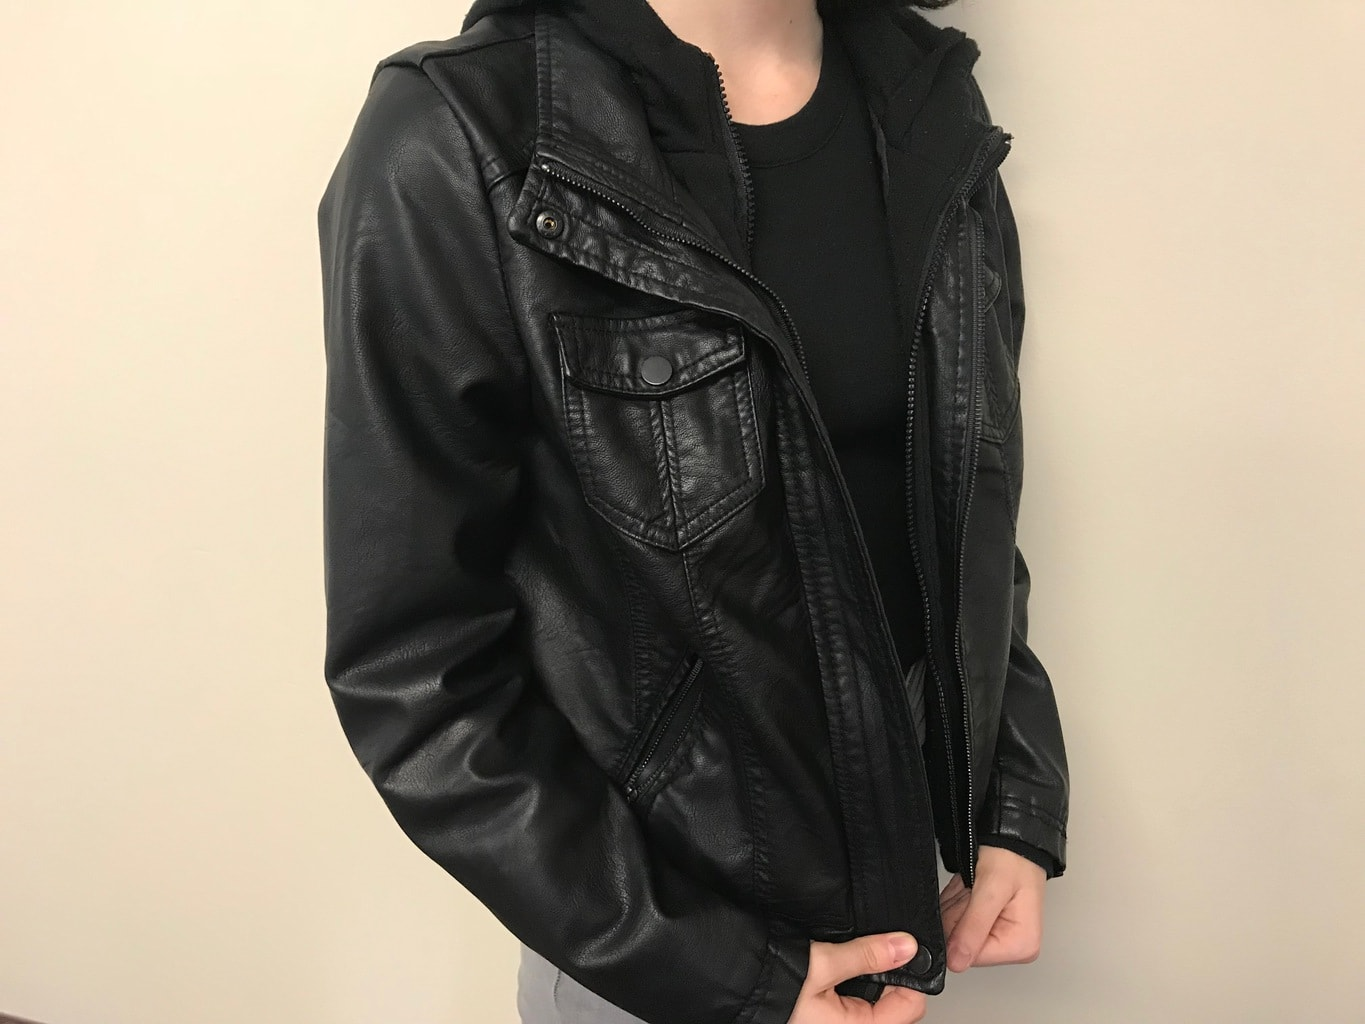 Cara's black motorcycle jacket has an inner knit layer with a hood for added warmth.